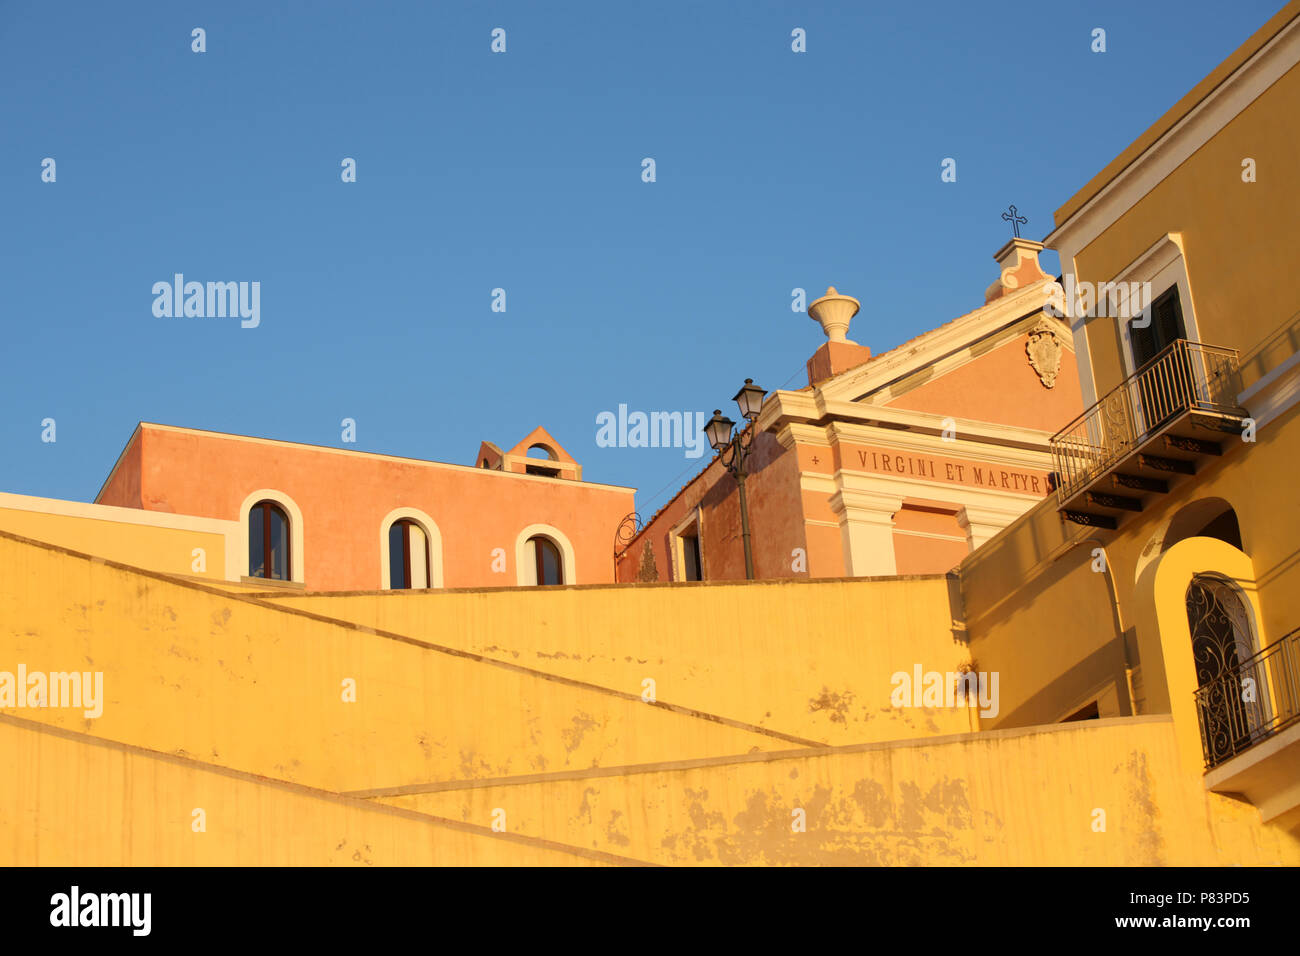 Exterior stone stairway leading to village, Ventotene, Italy, Europe - Stock Image